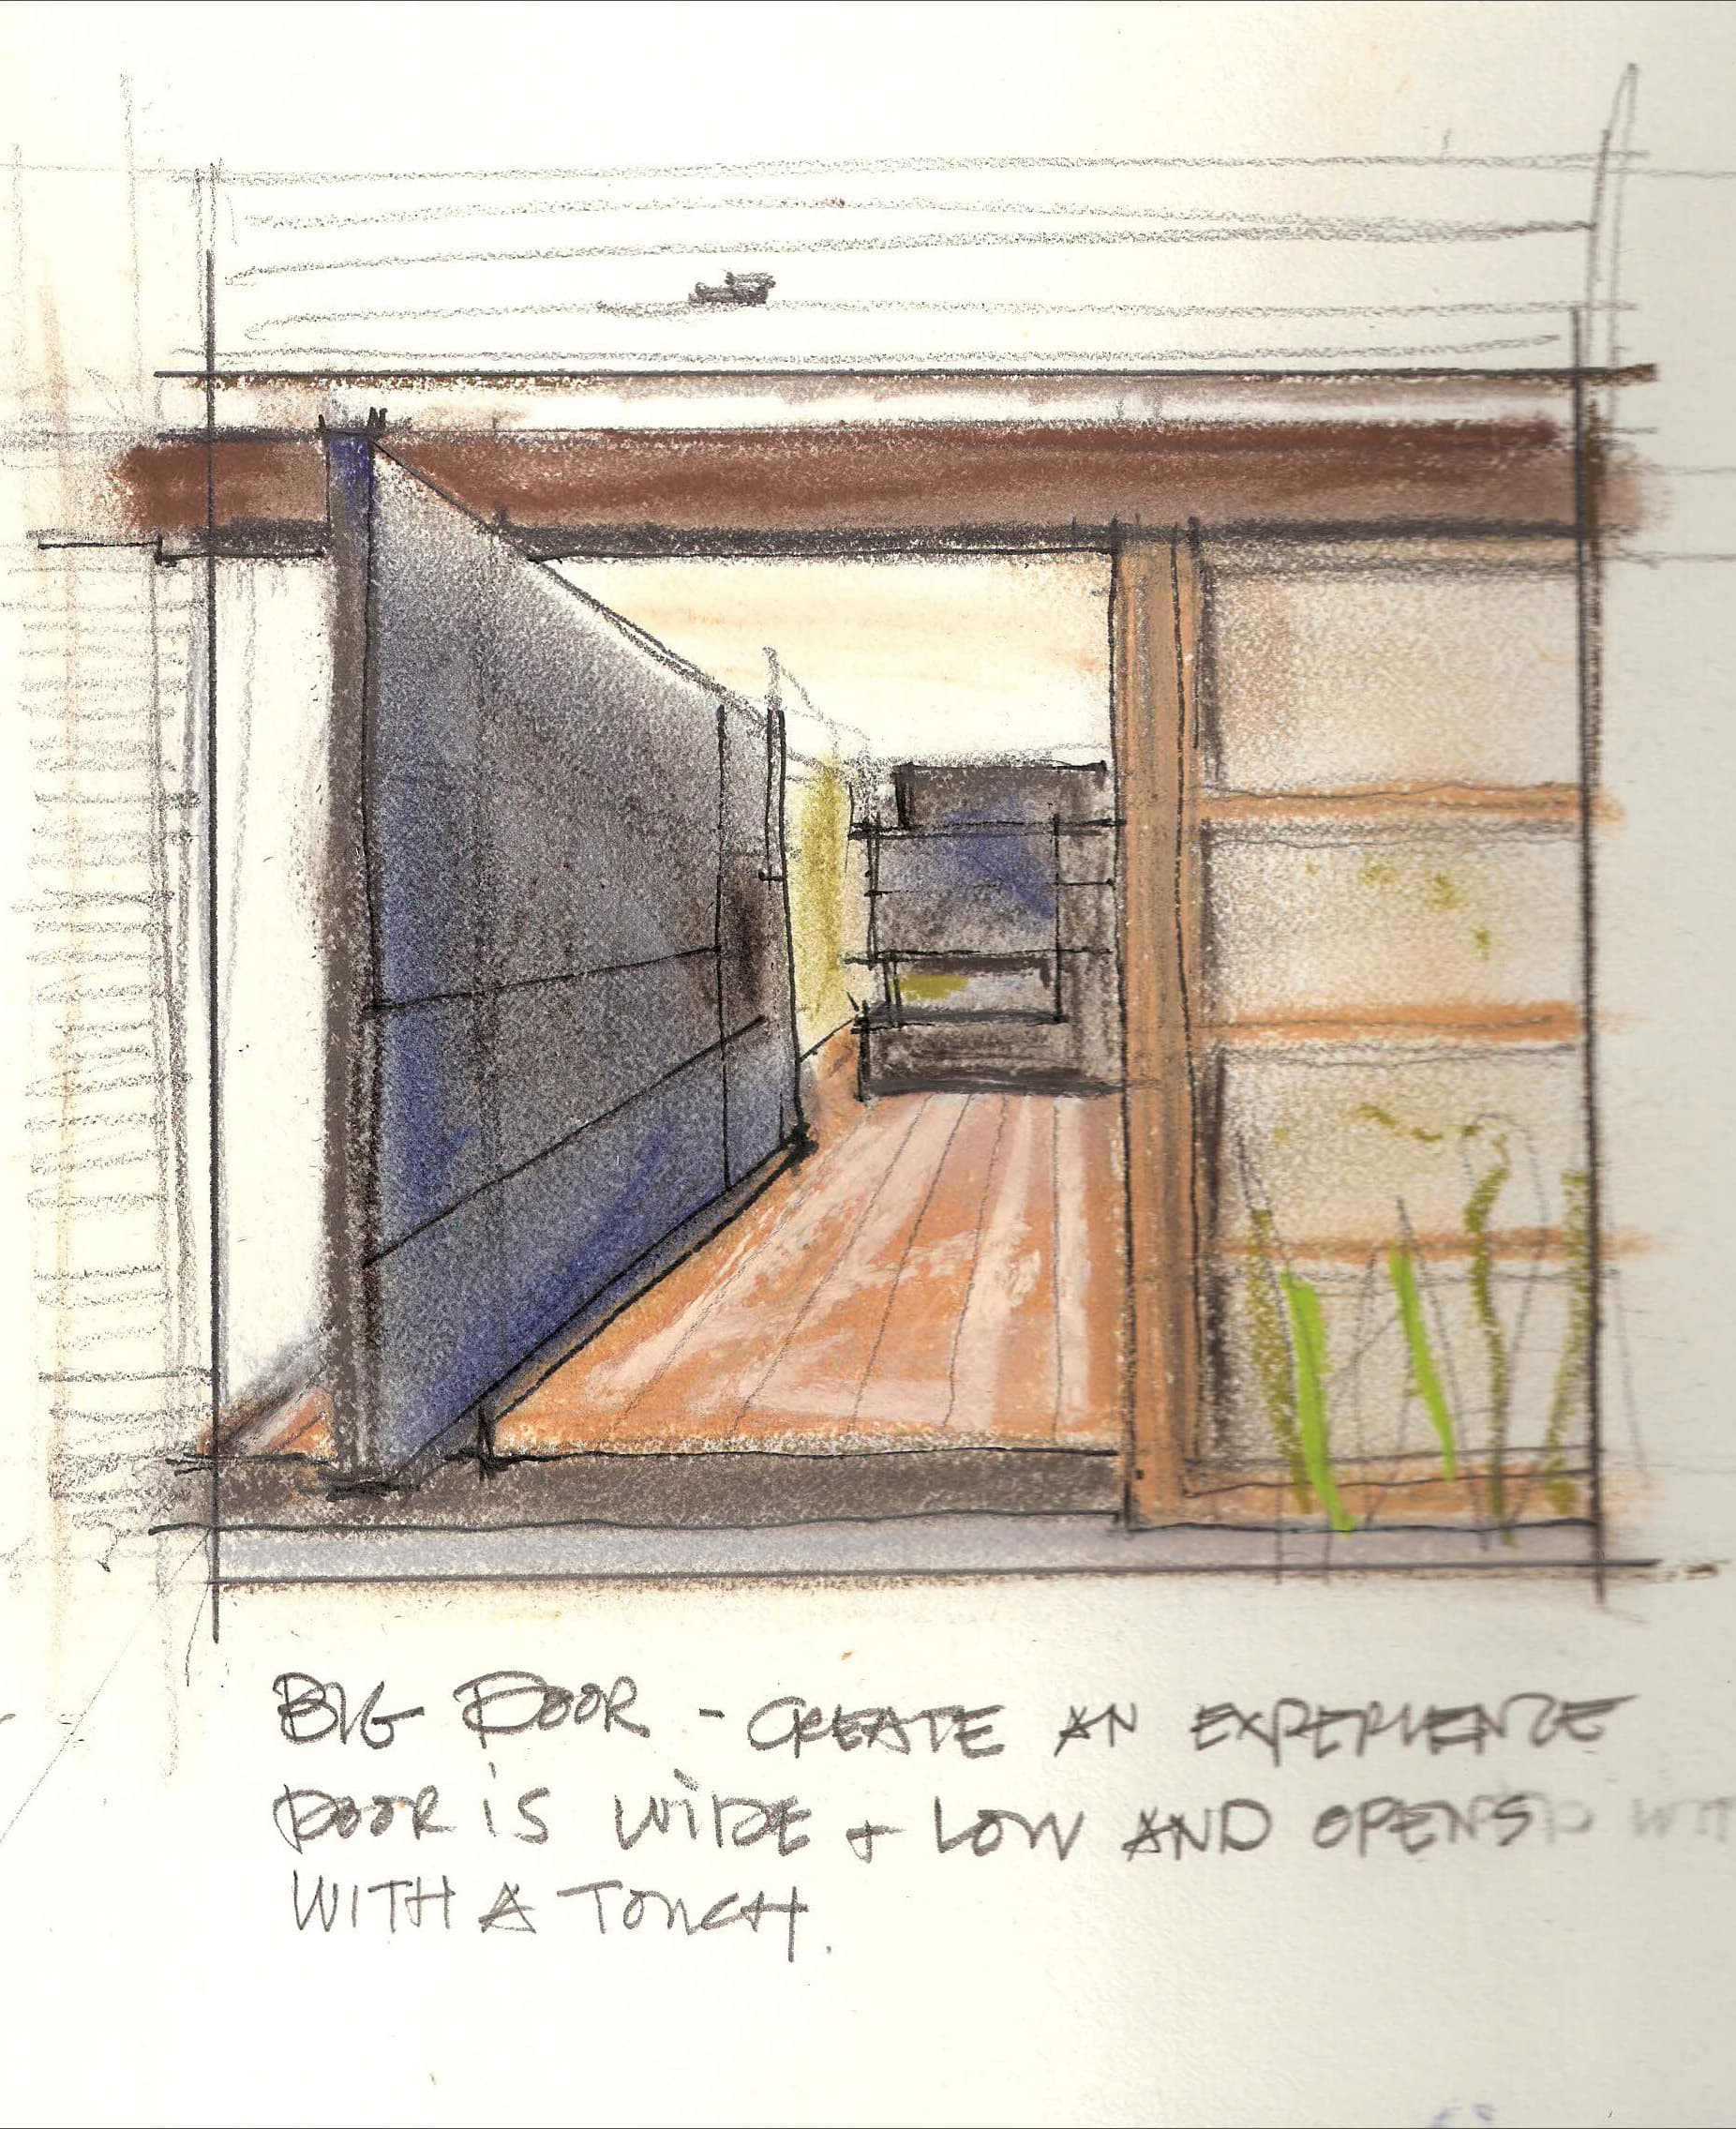 Creating an entry - A wide steel door counter-balances a low roof line.